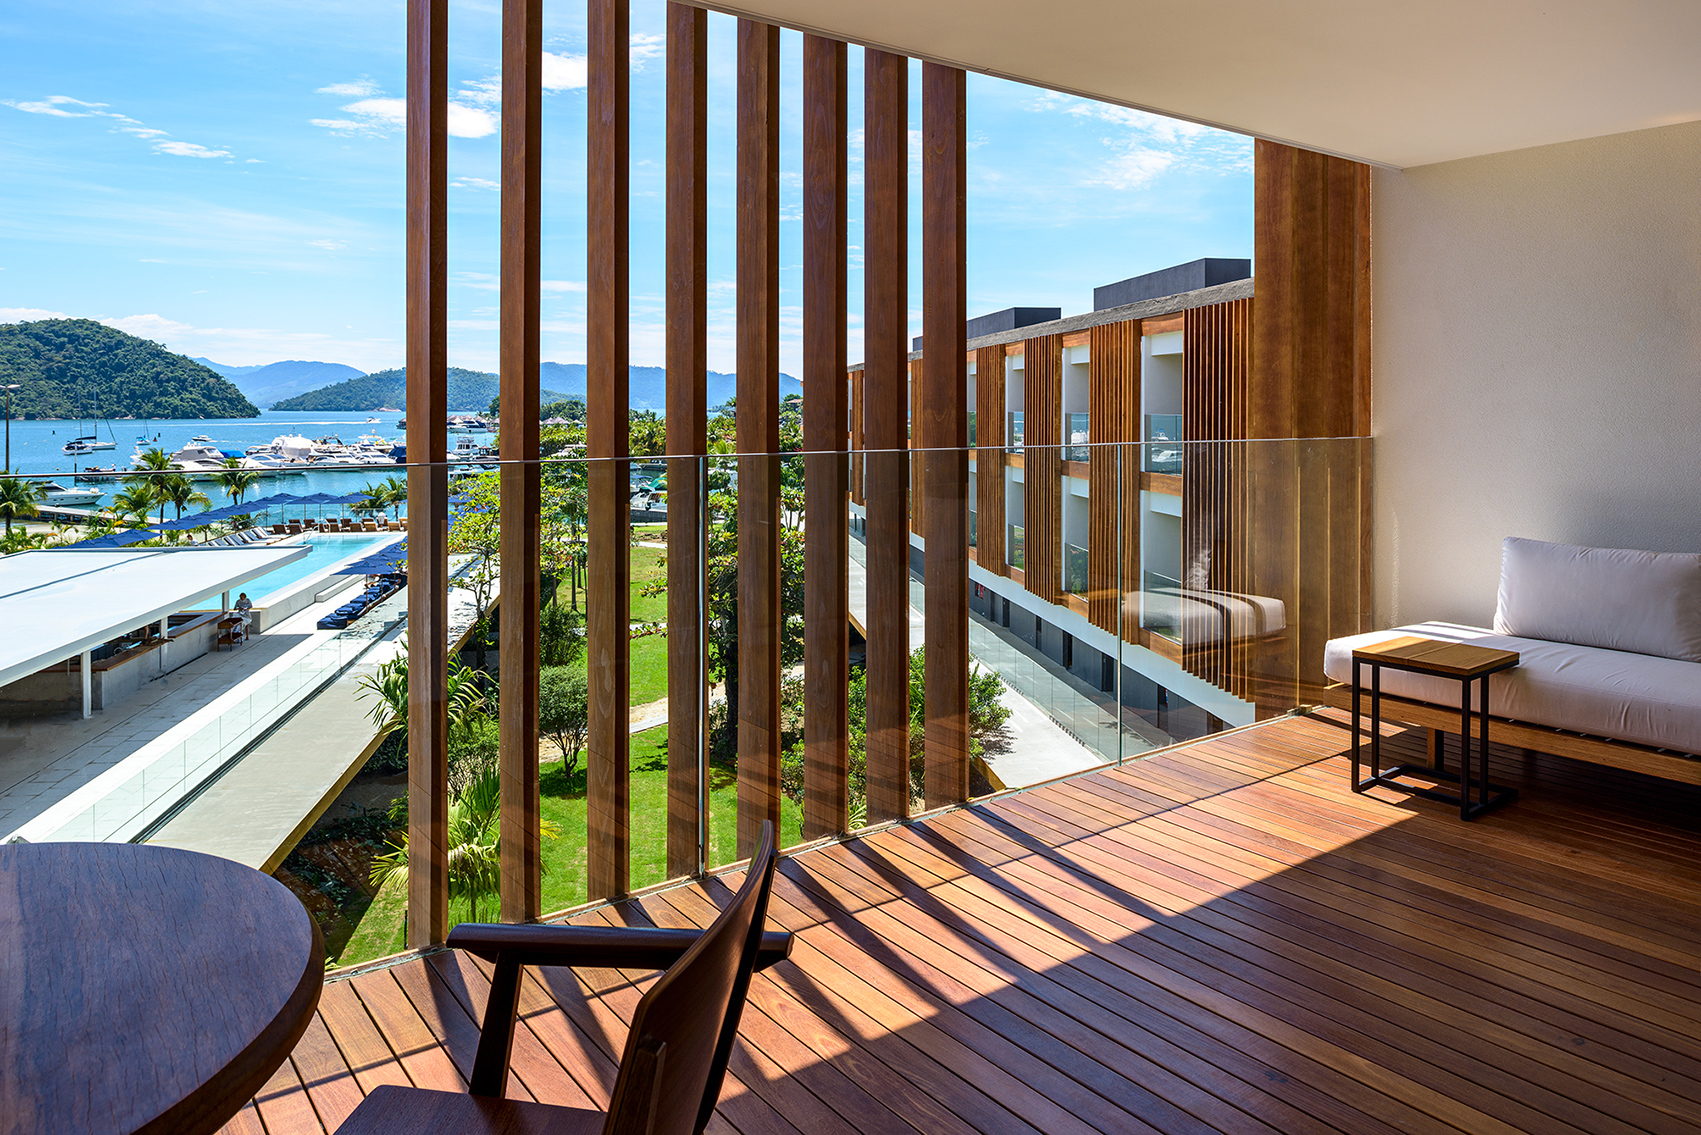 Art_of_travel_fasano_angra_dos_reis_balcony_suite